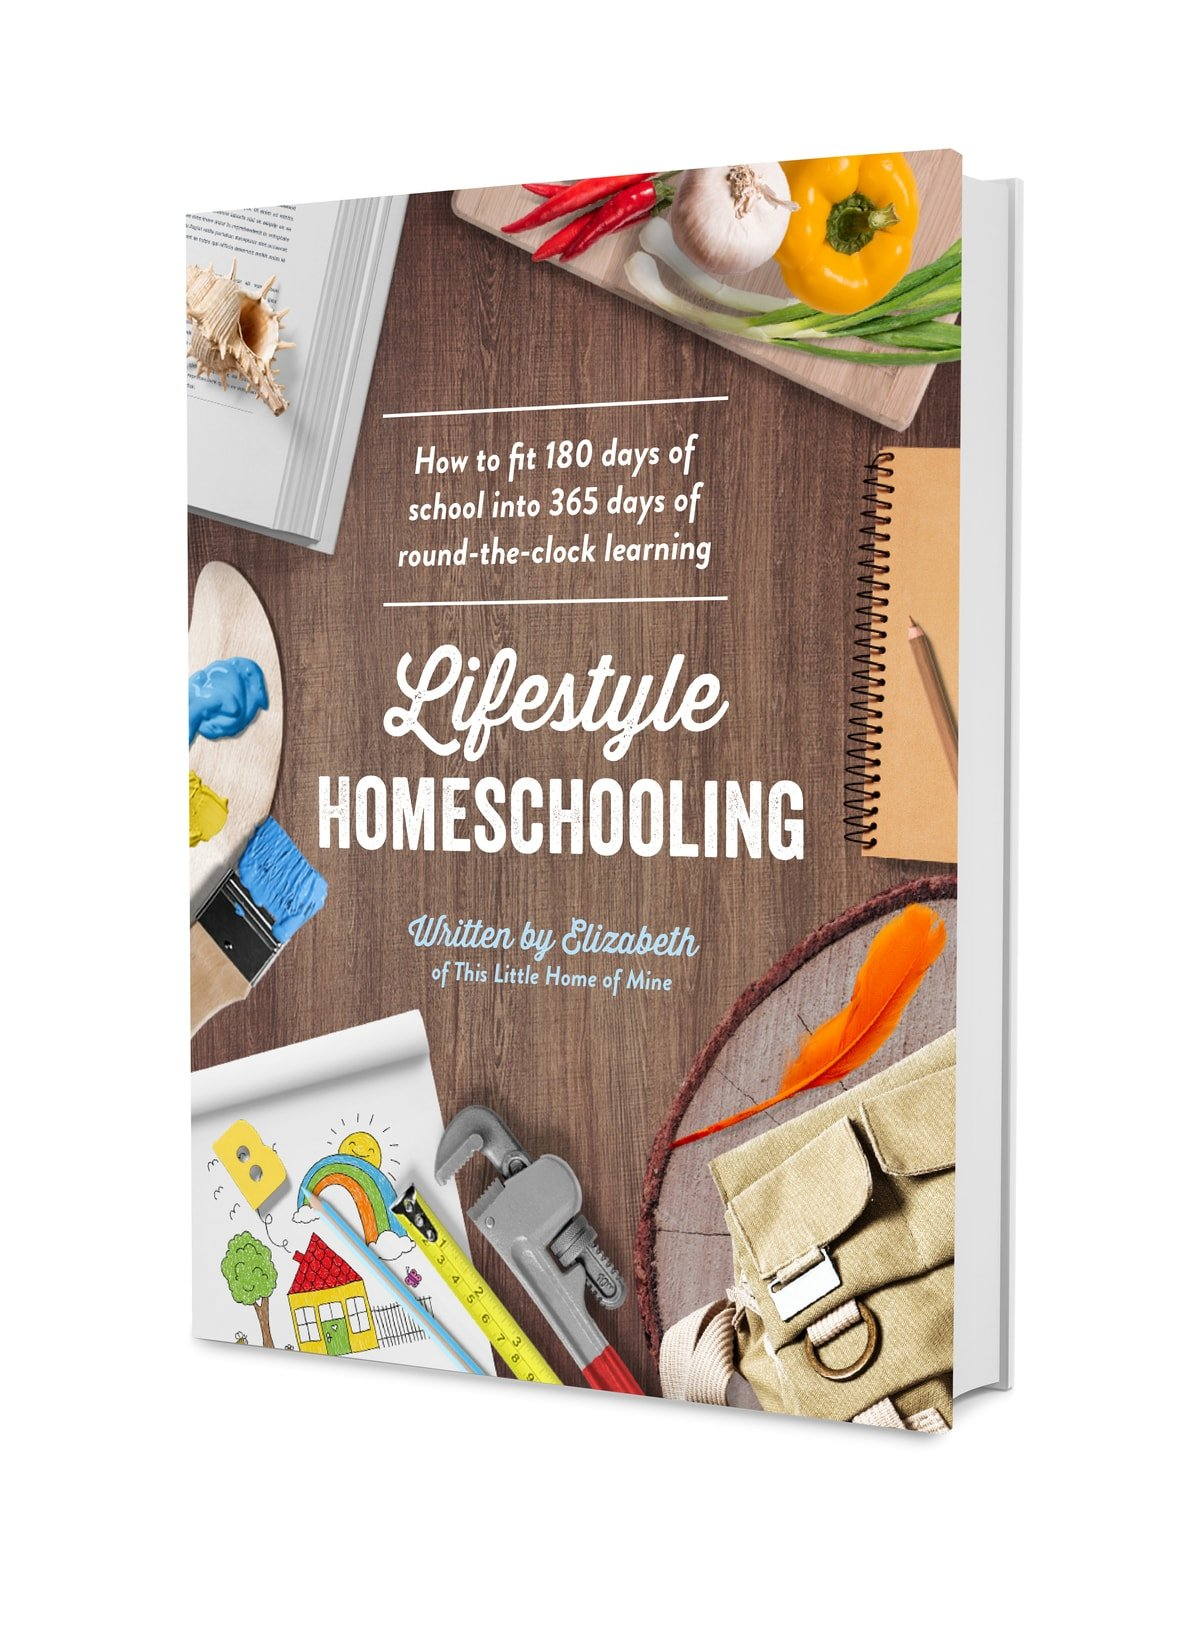 Lifestyle Homeschooling by This Little Home of Mine